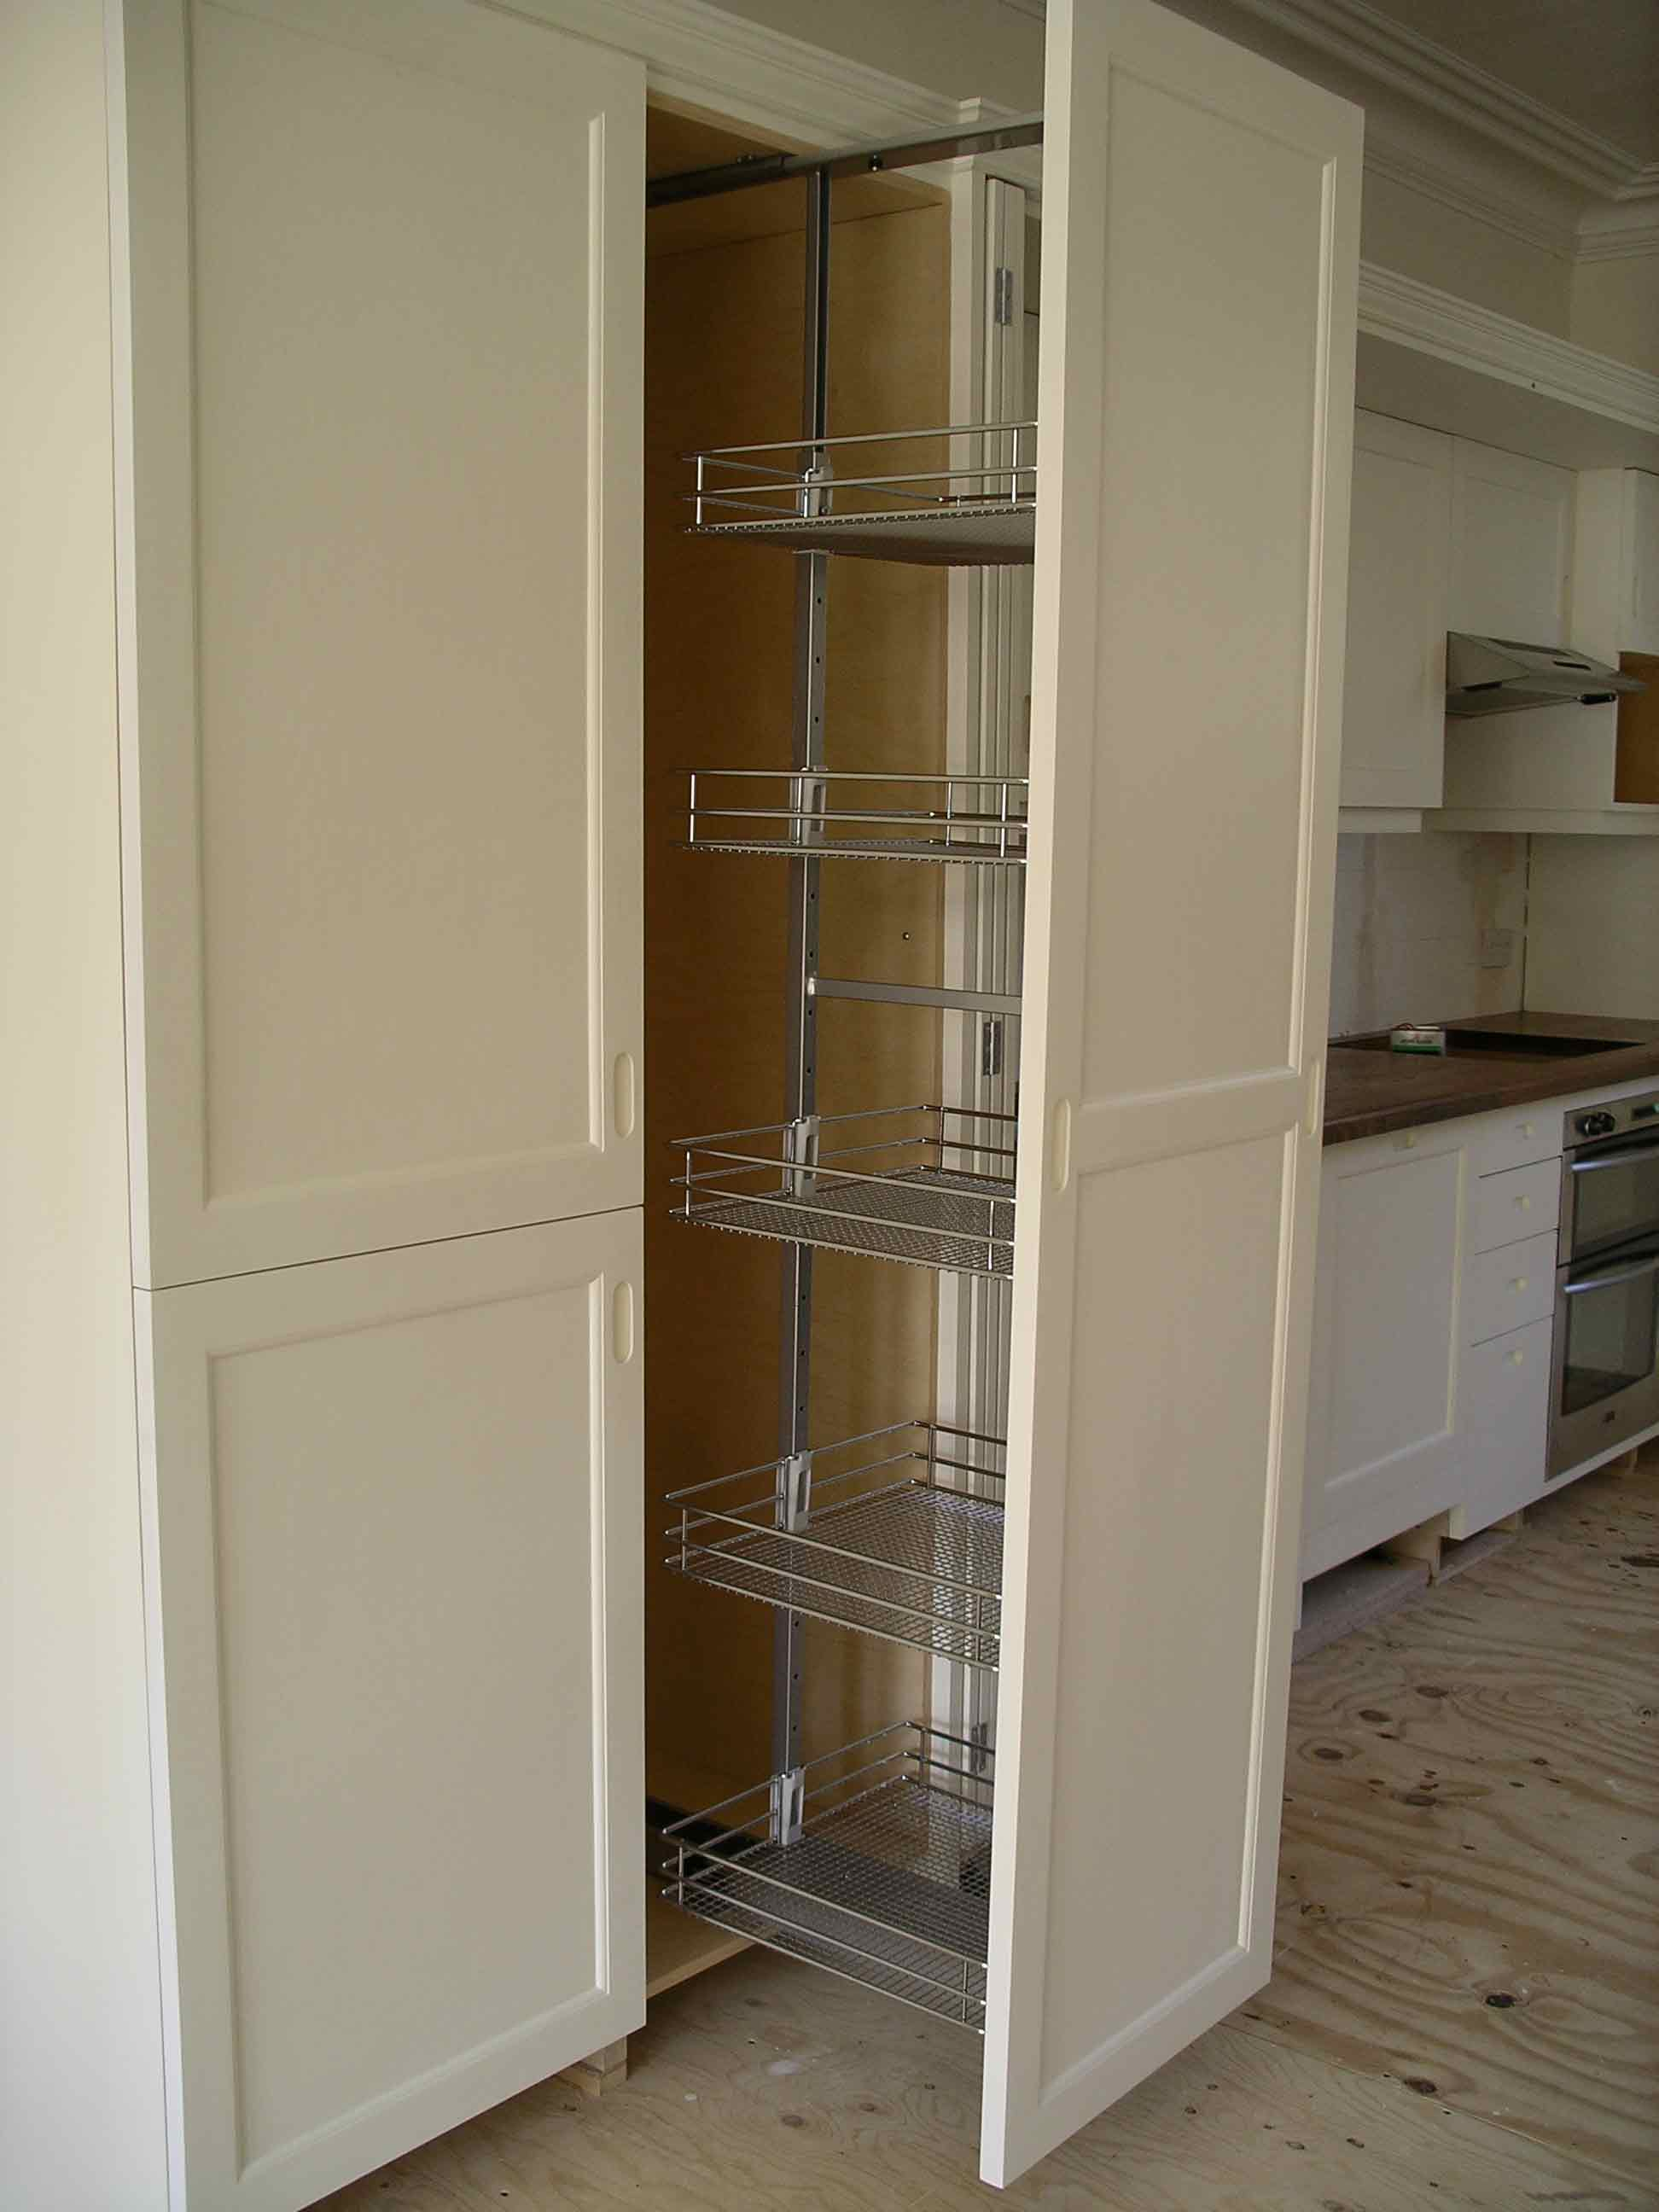 pill-out larder baskets in handmade kitchen